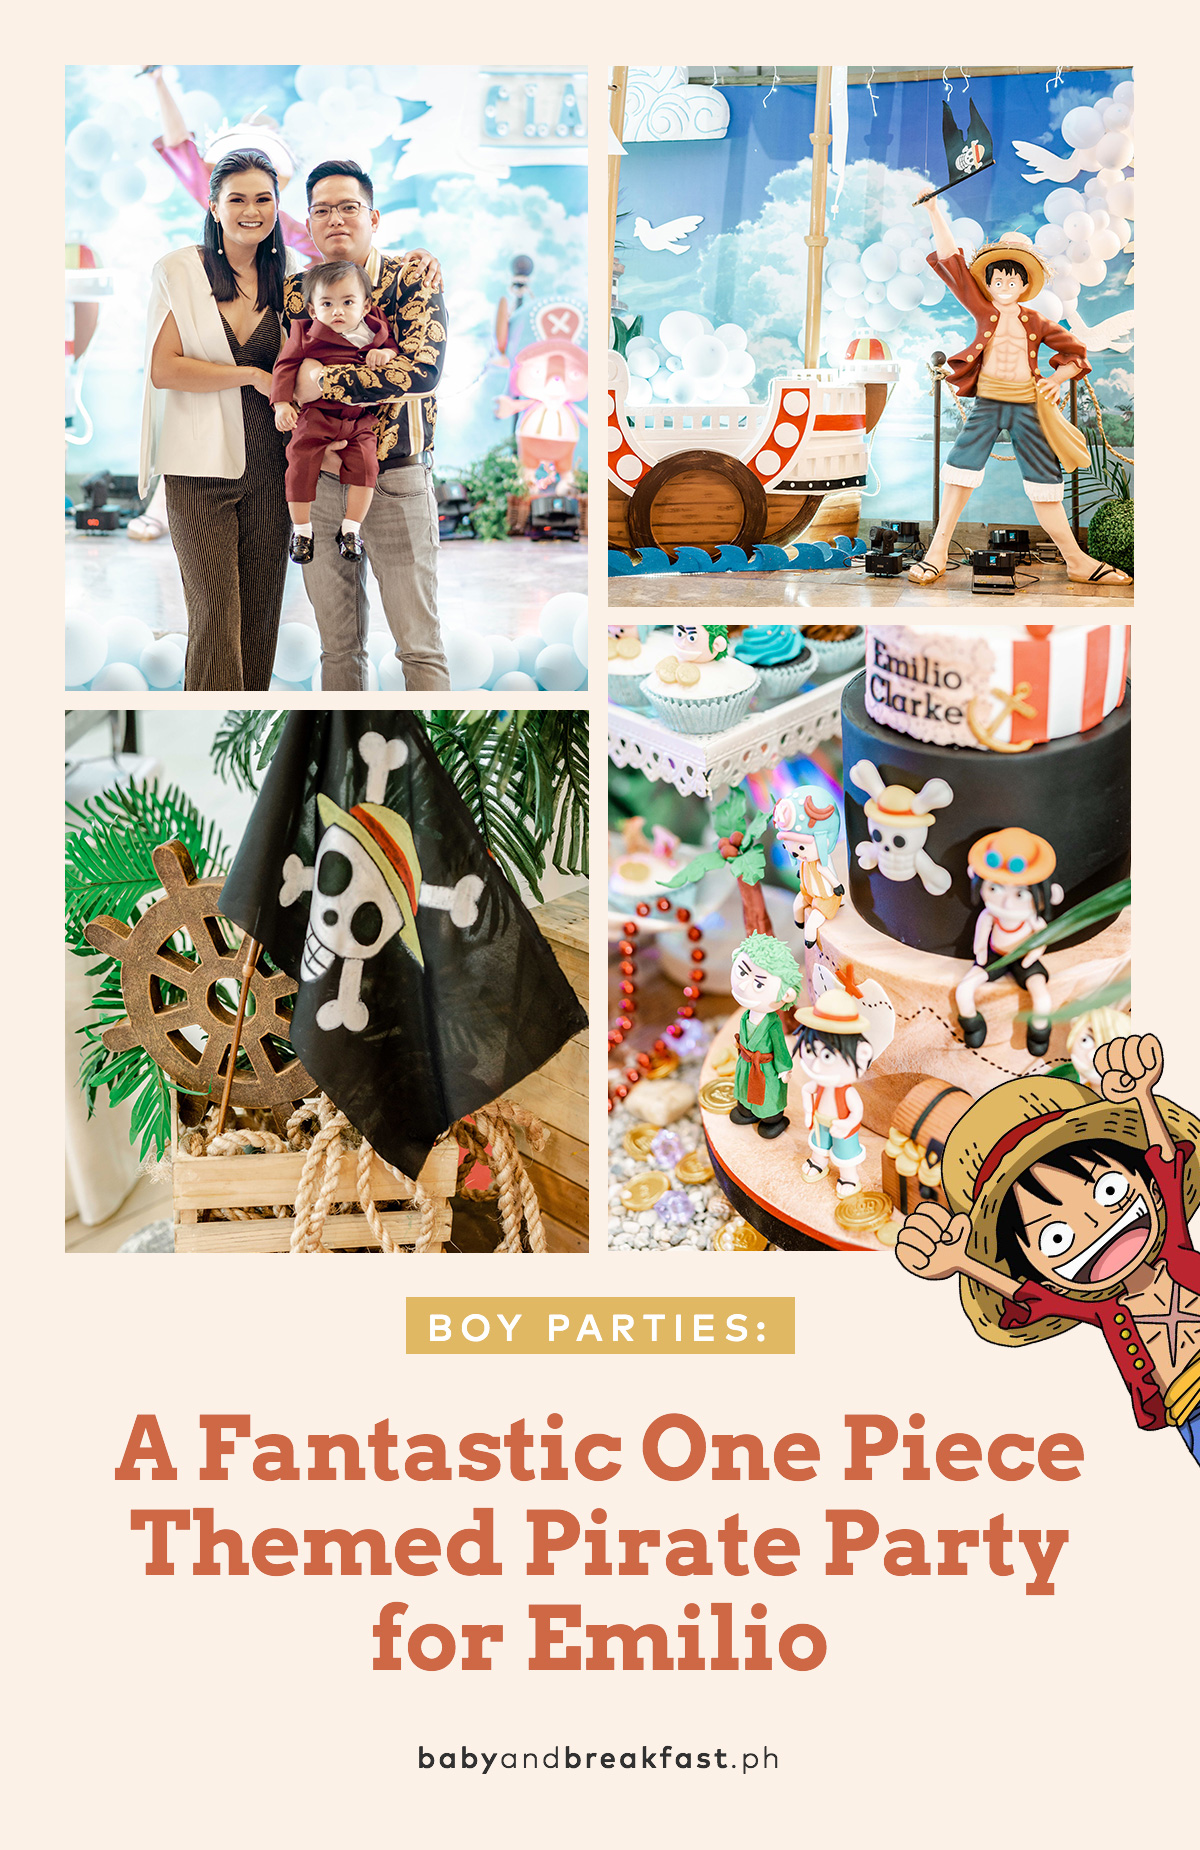 Baby and Breakfast: Boy Parties A Fantastic One Piece Themed Pirate Party for Emilio